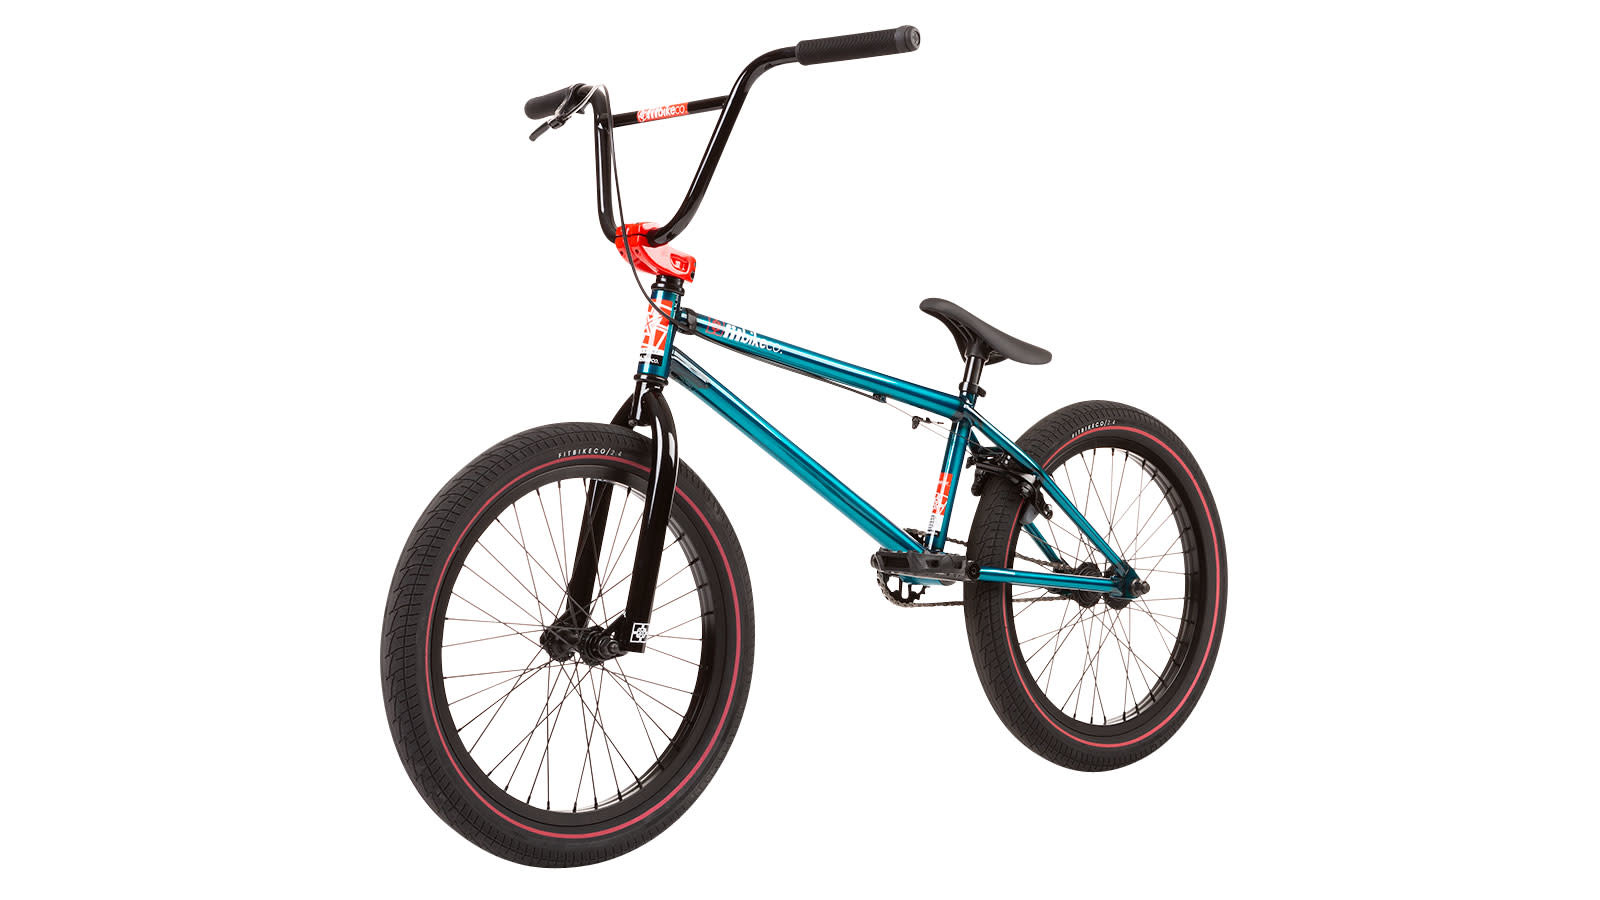 "Fit 2020 Fit Series One 20.5"" Trans Teal Bike"